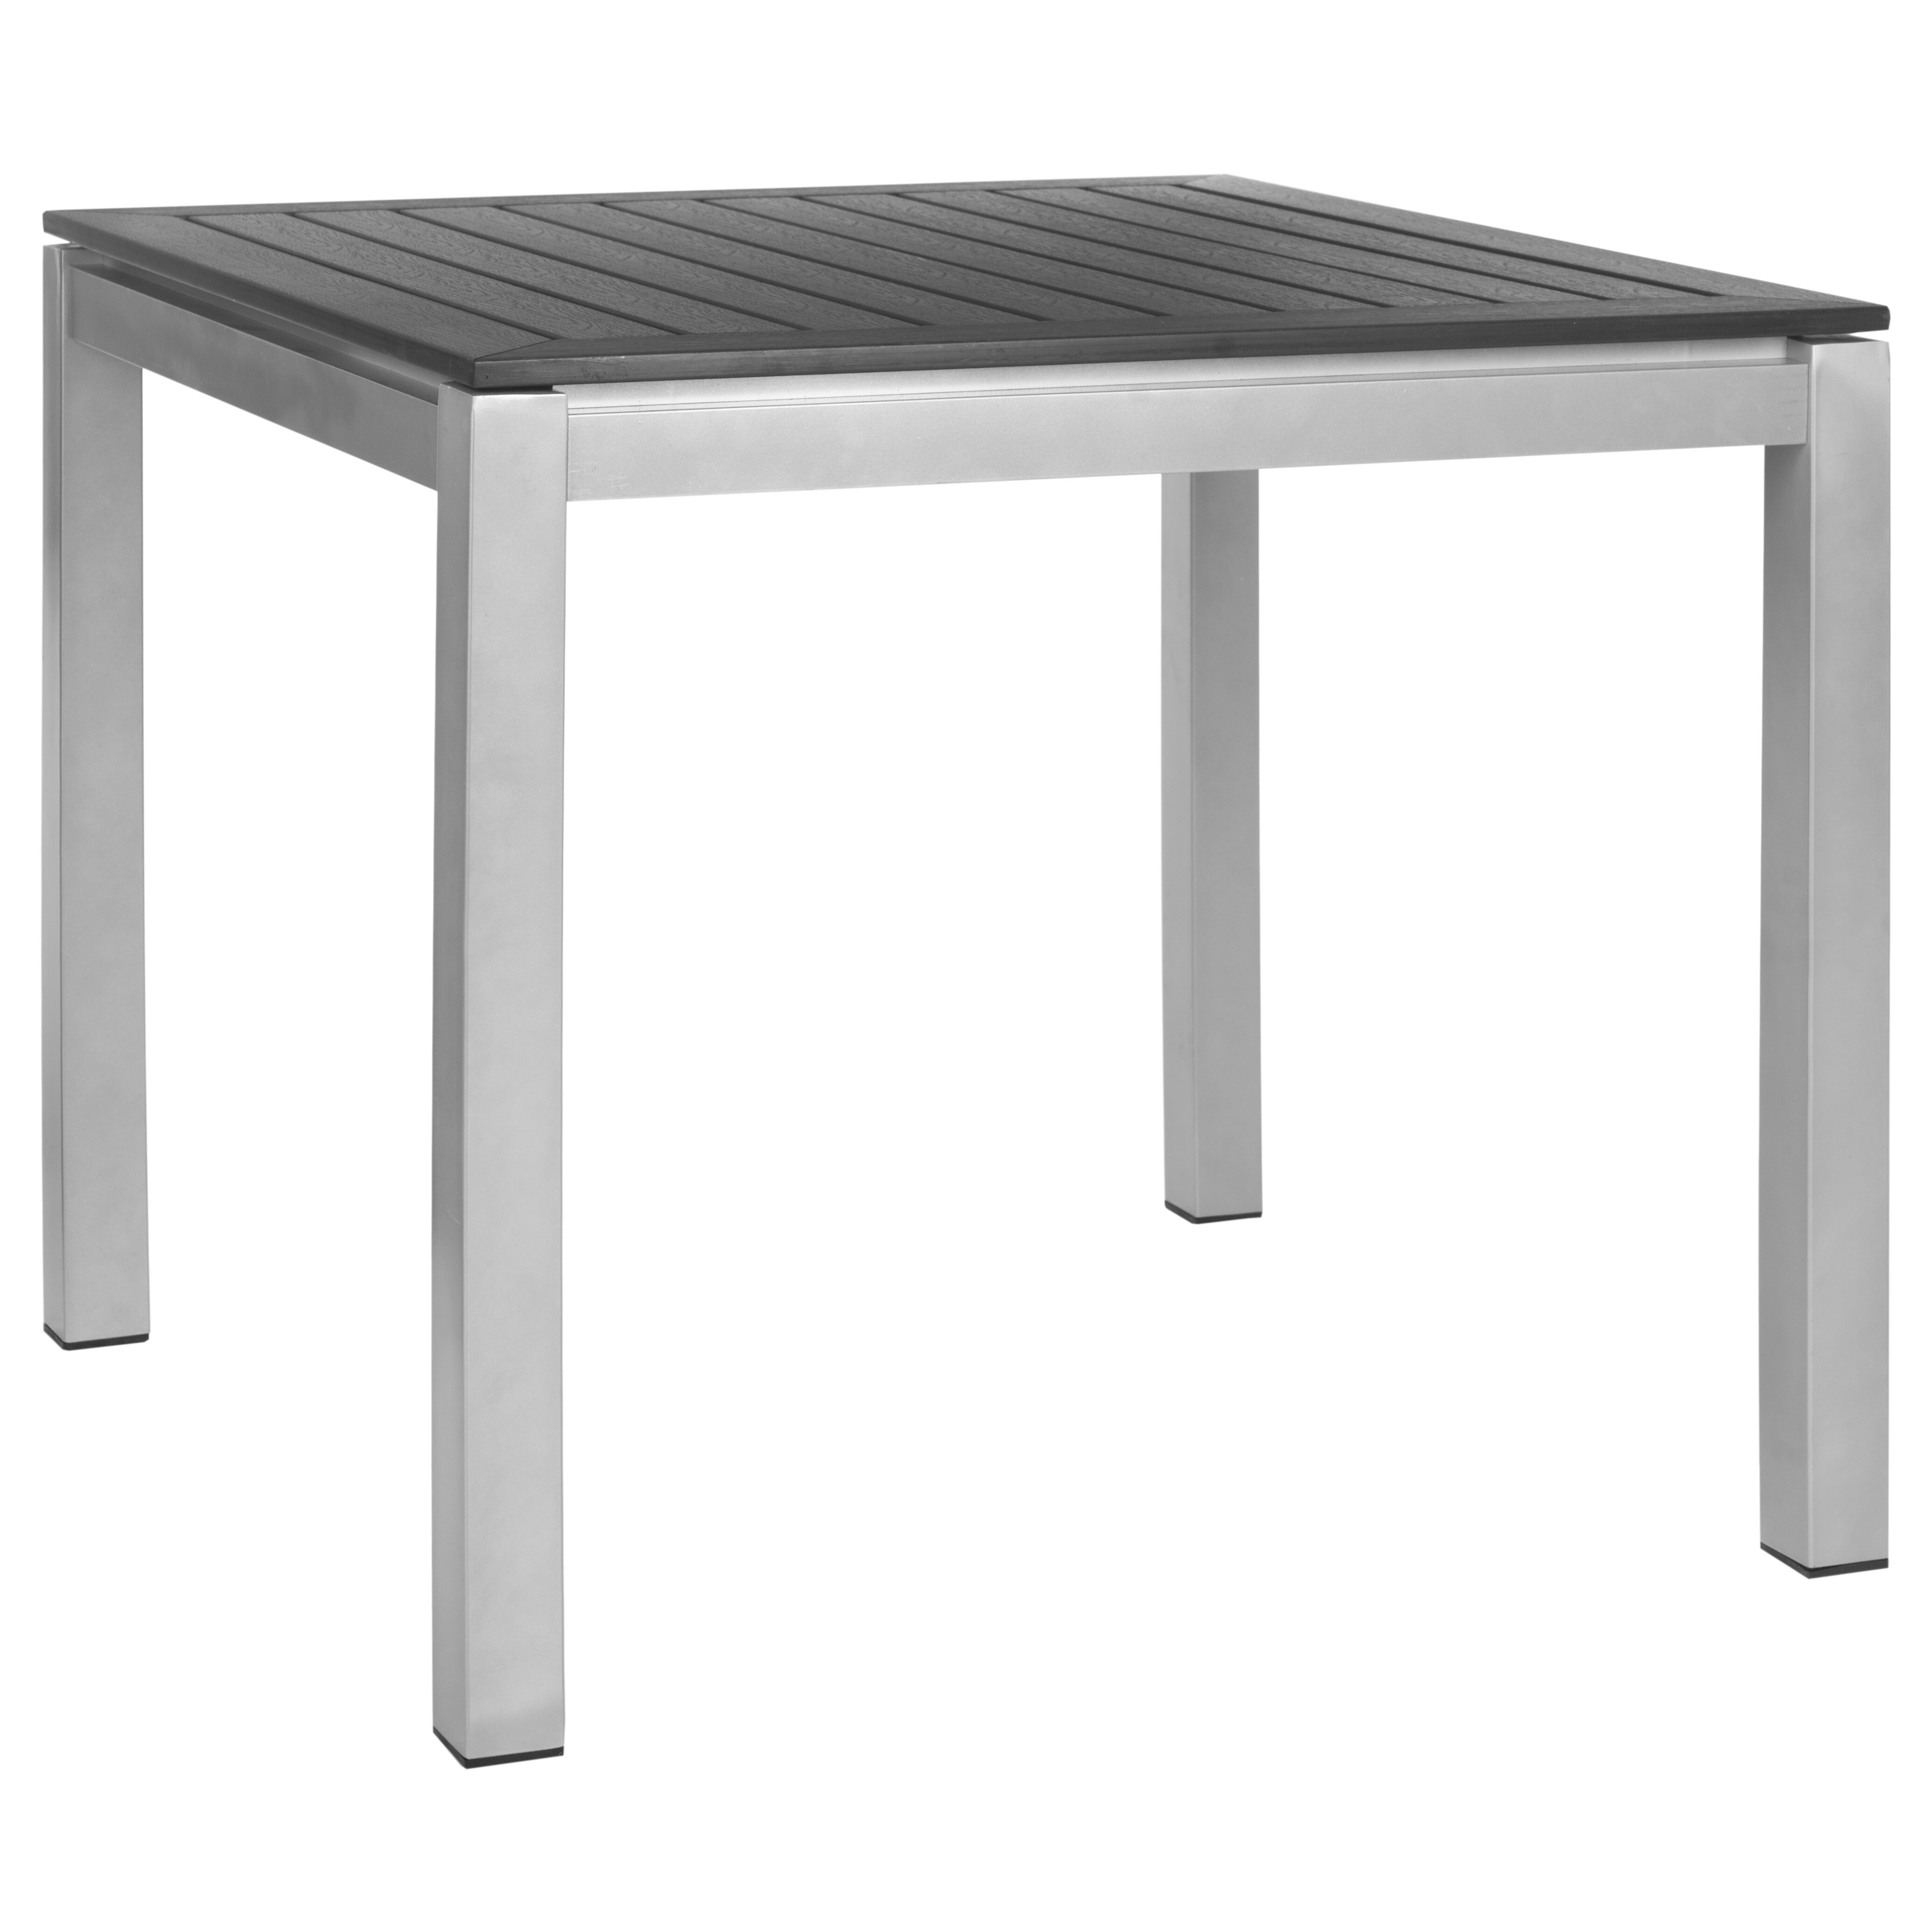 Safavieh patio onika square end table wayfair for Square side table